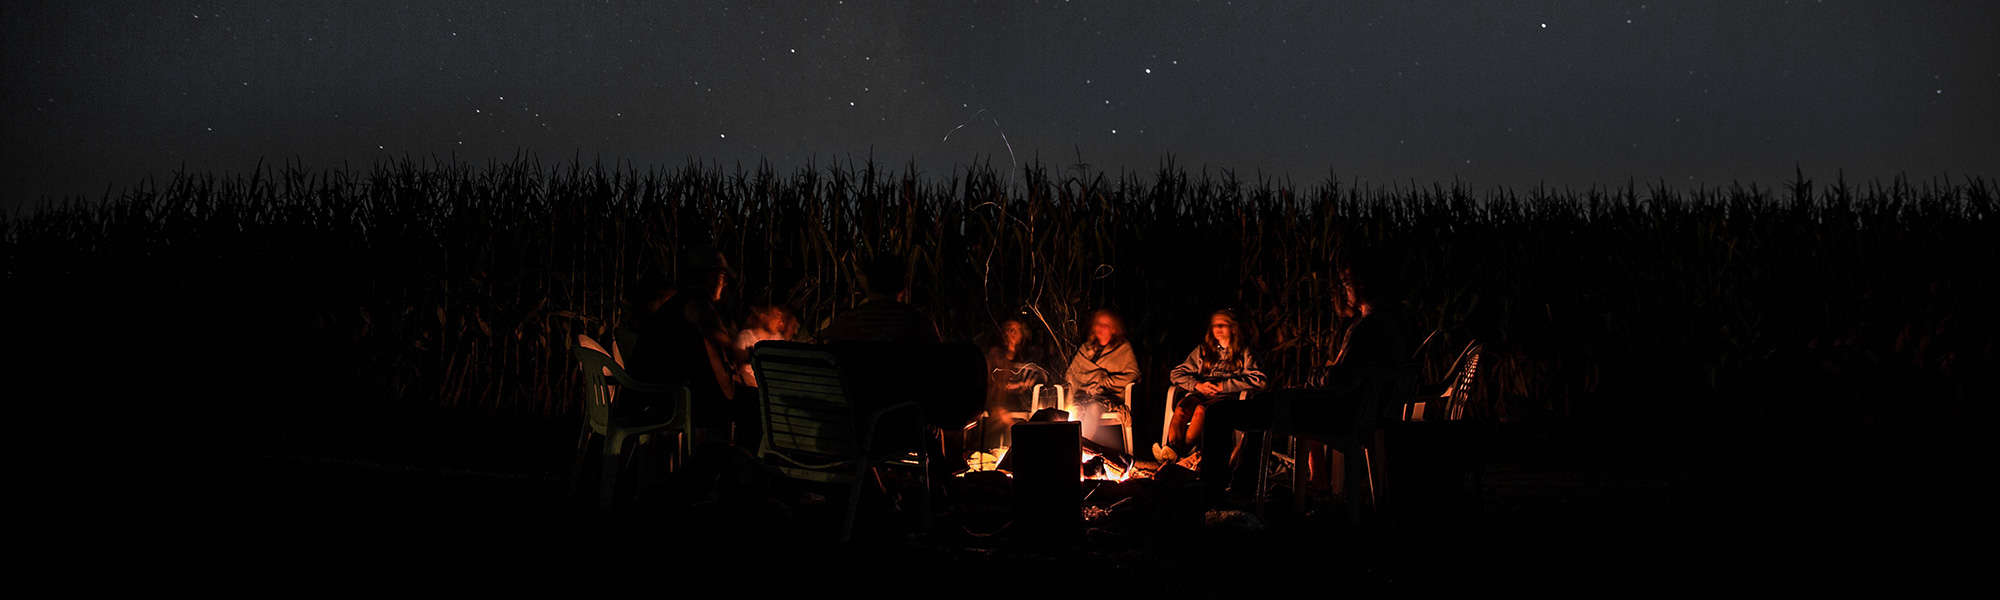 best-oversized-moon-club-sofa-chairs-for-camping